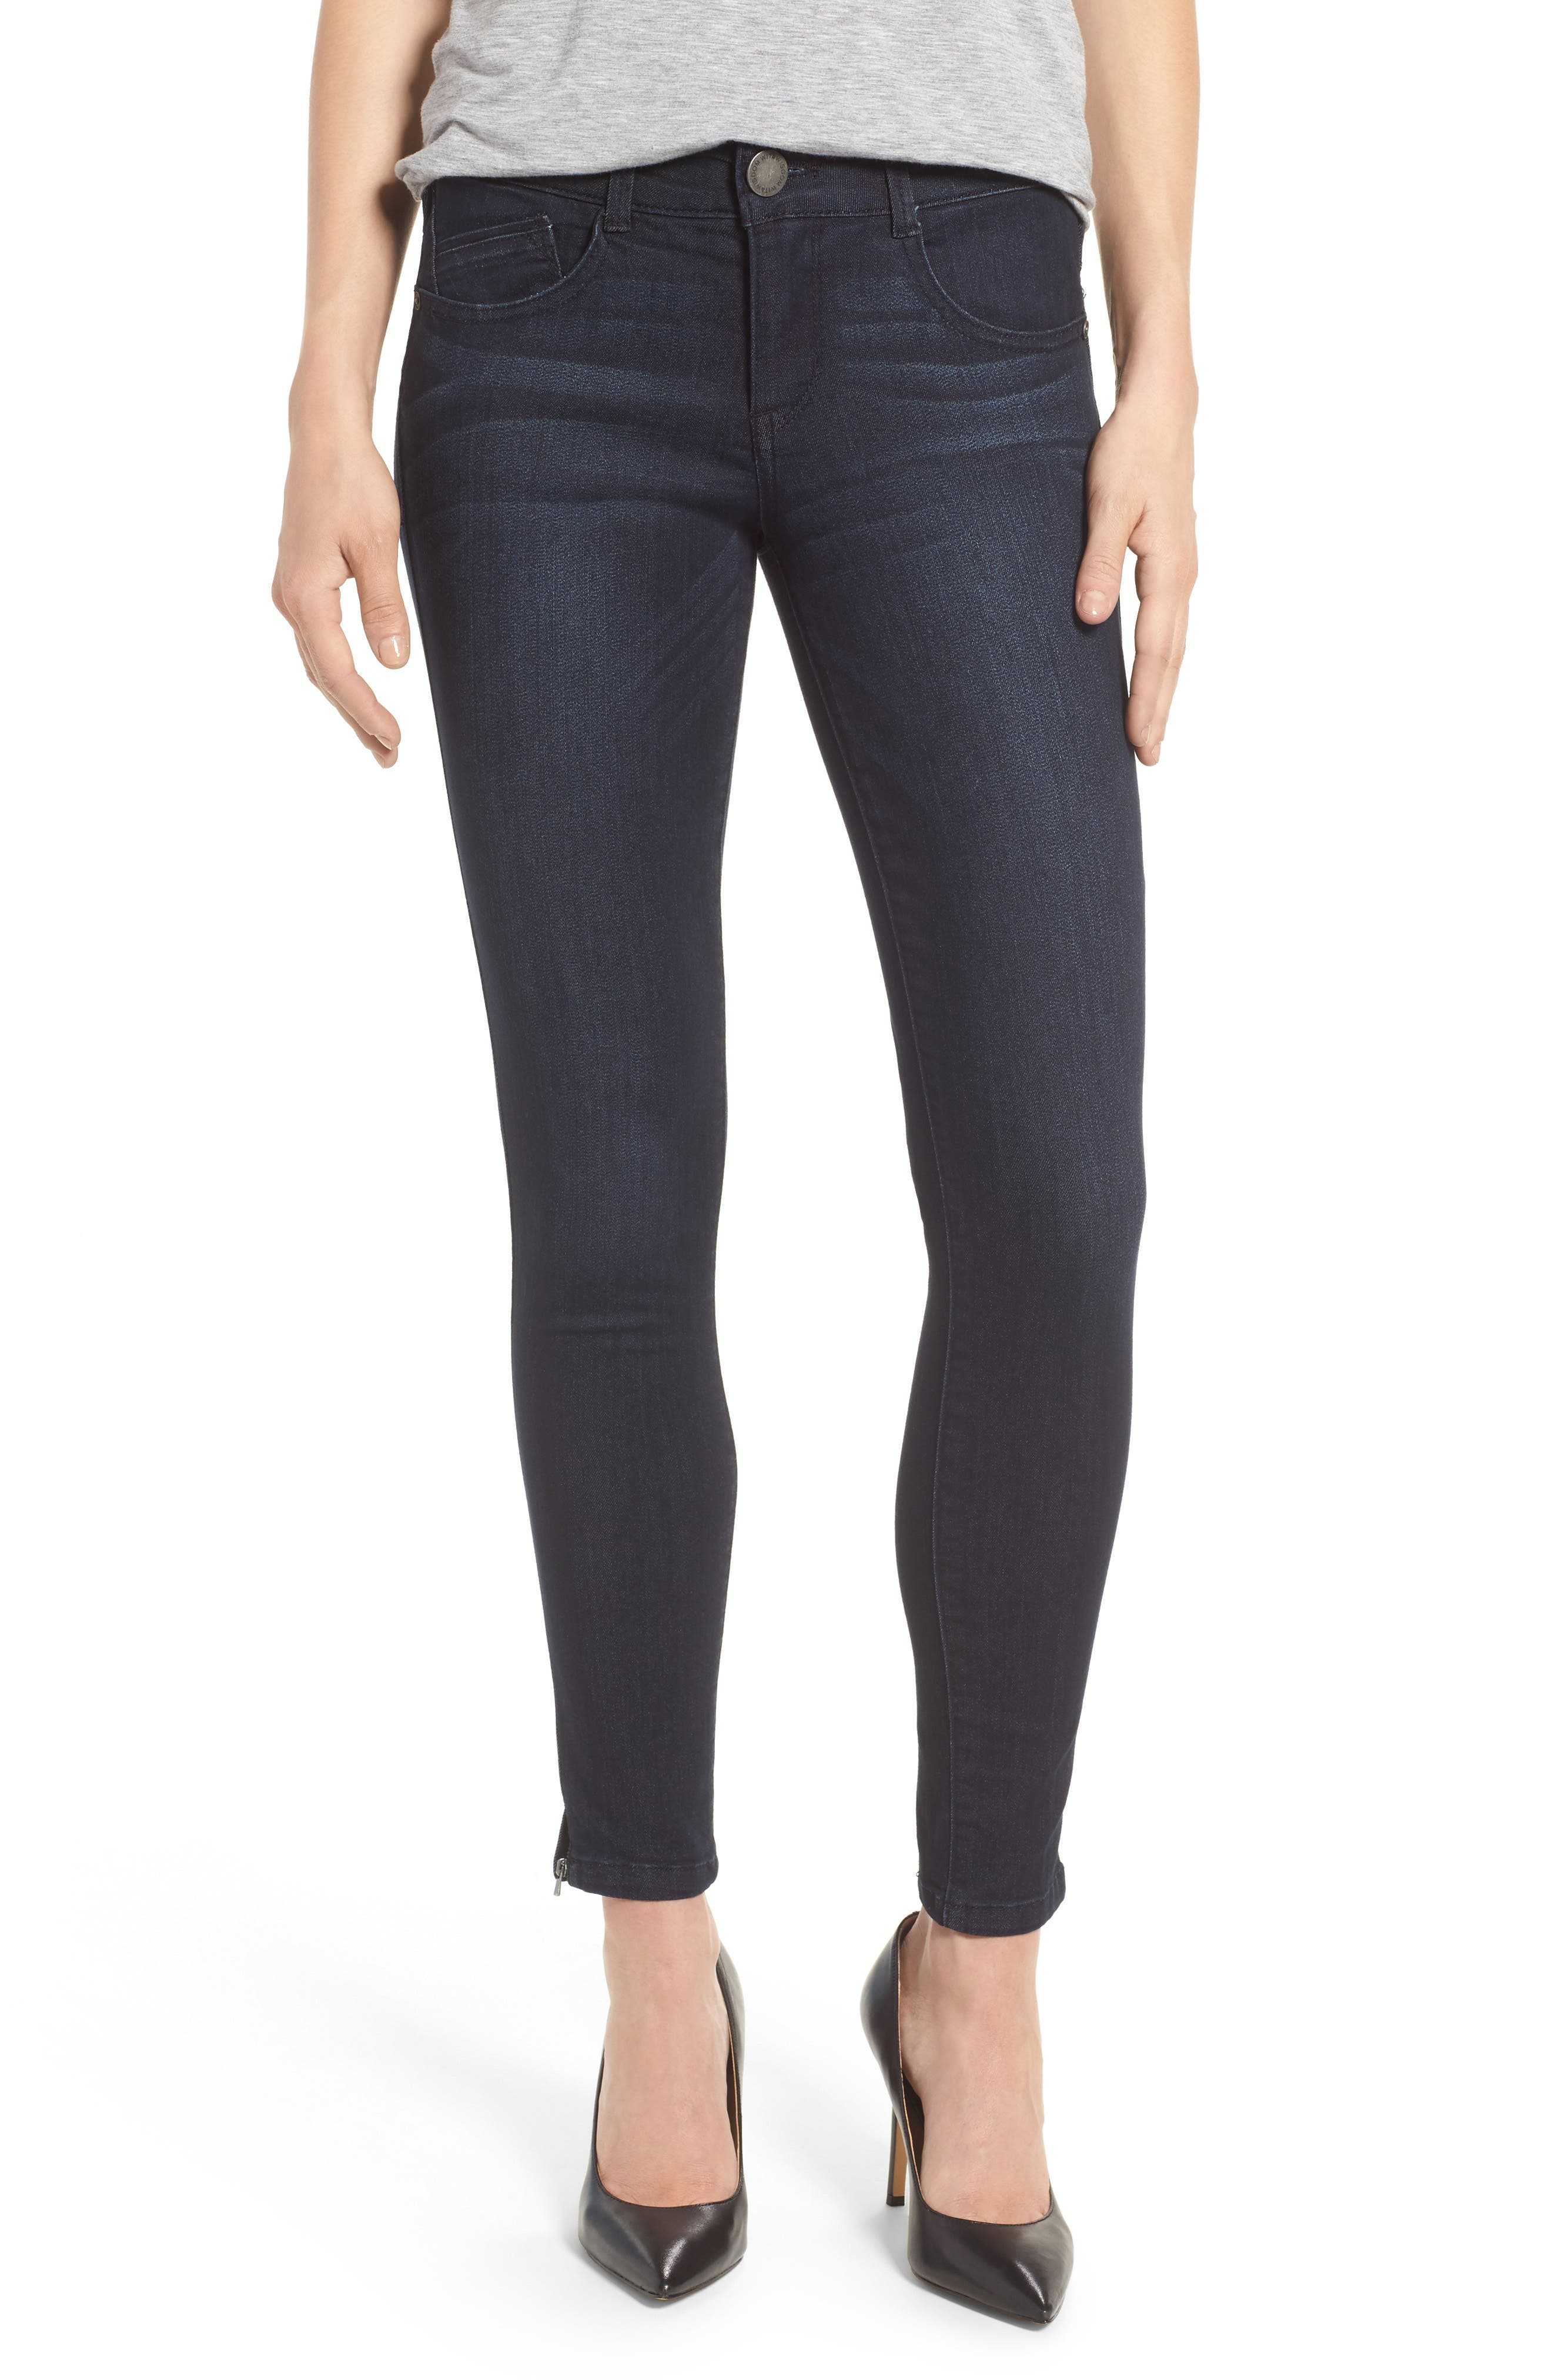 Ab-solution Ankle Zip Skinny Jeans,                         Main,                         color, Indigo